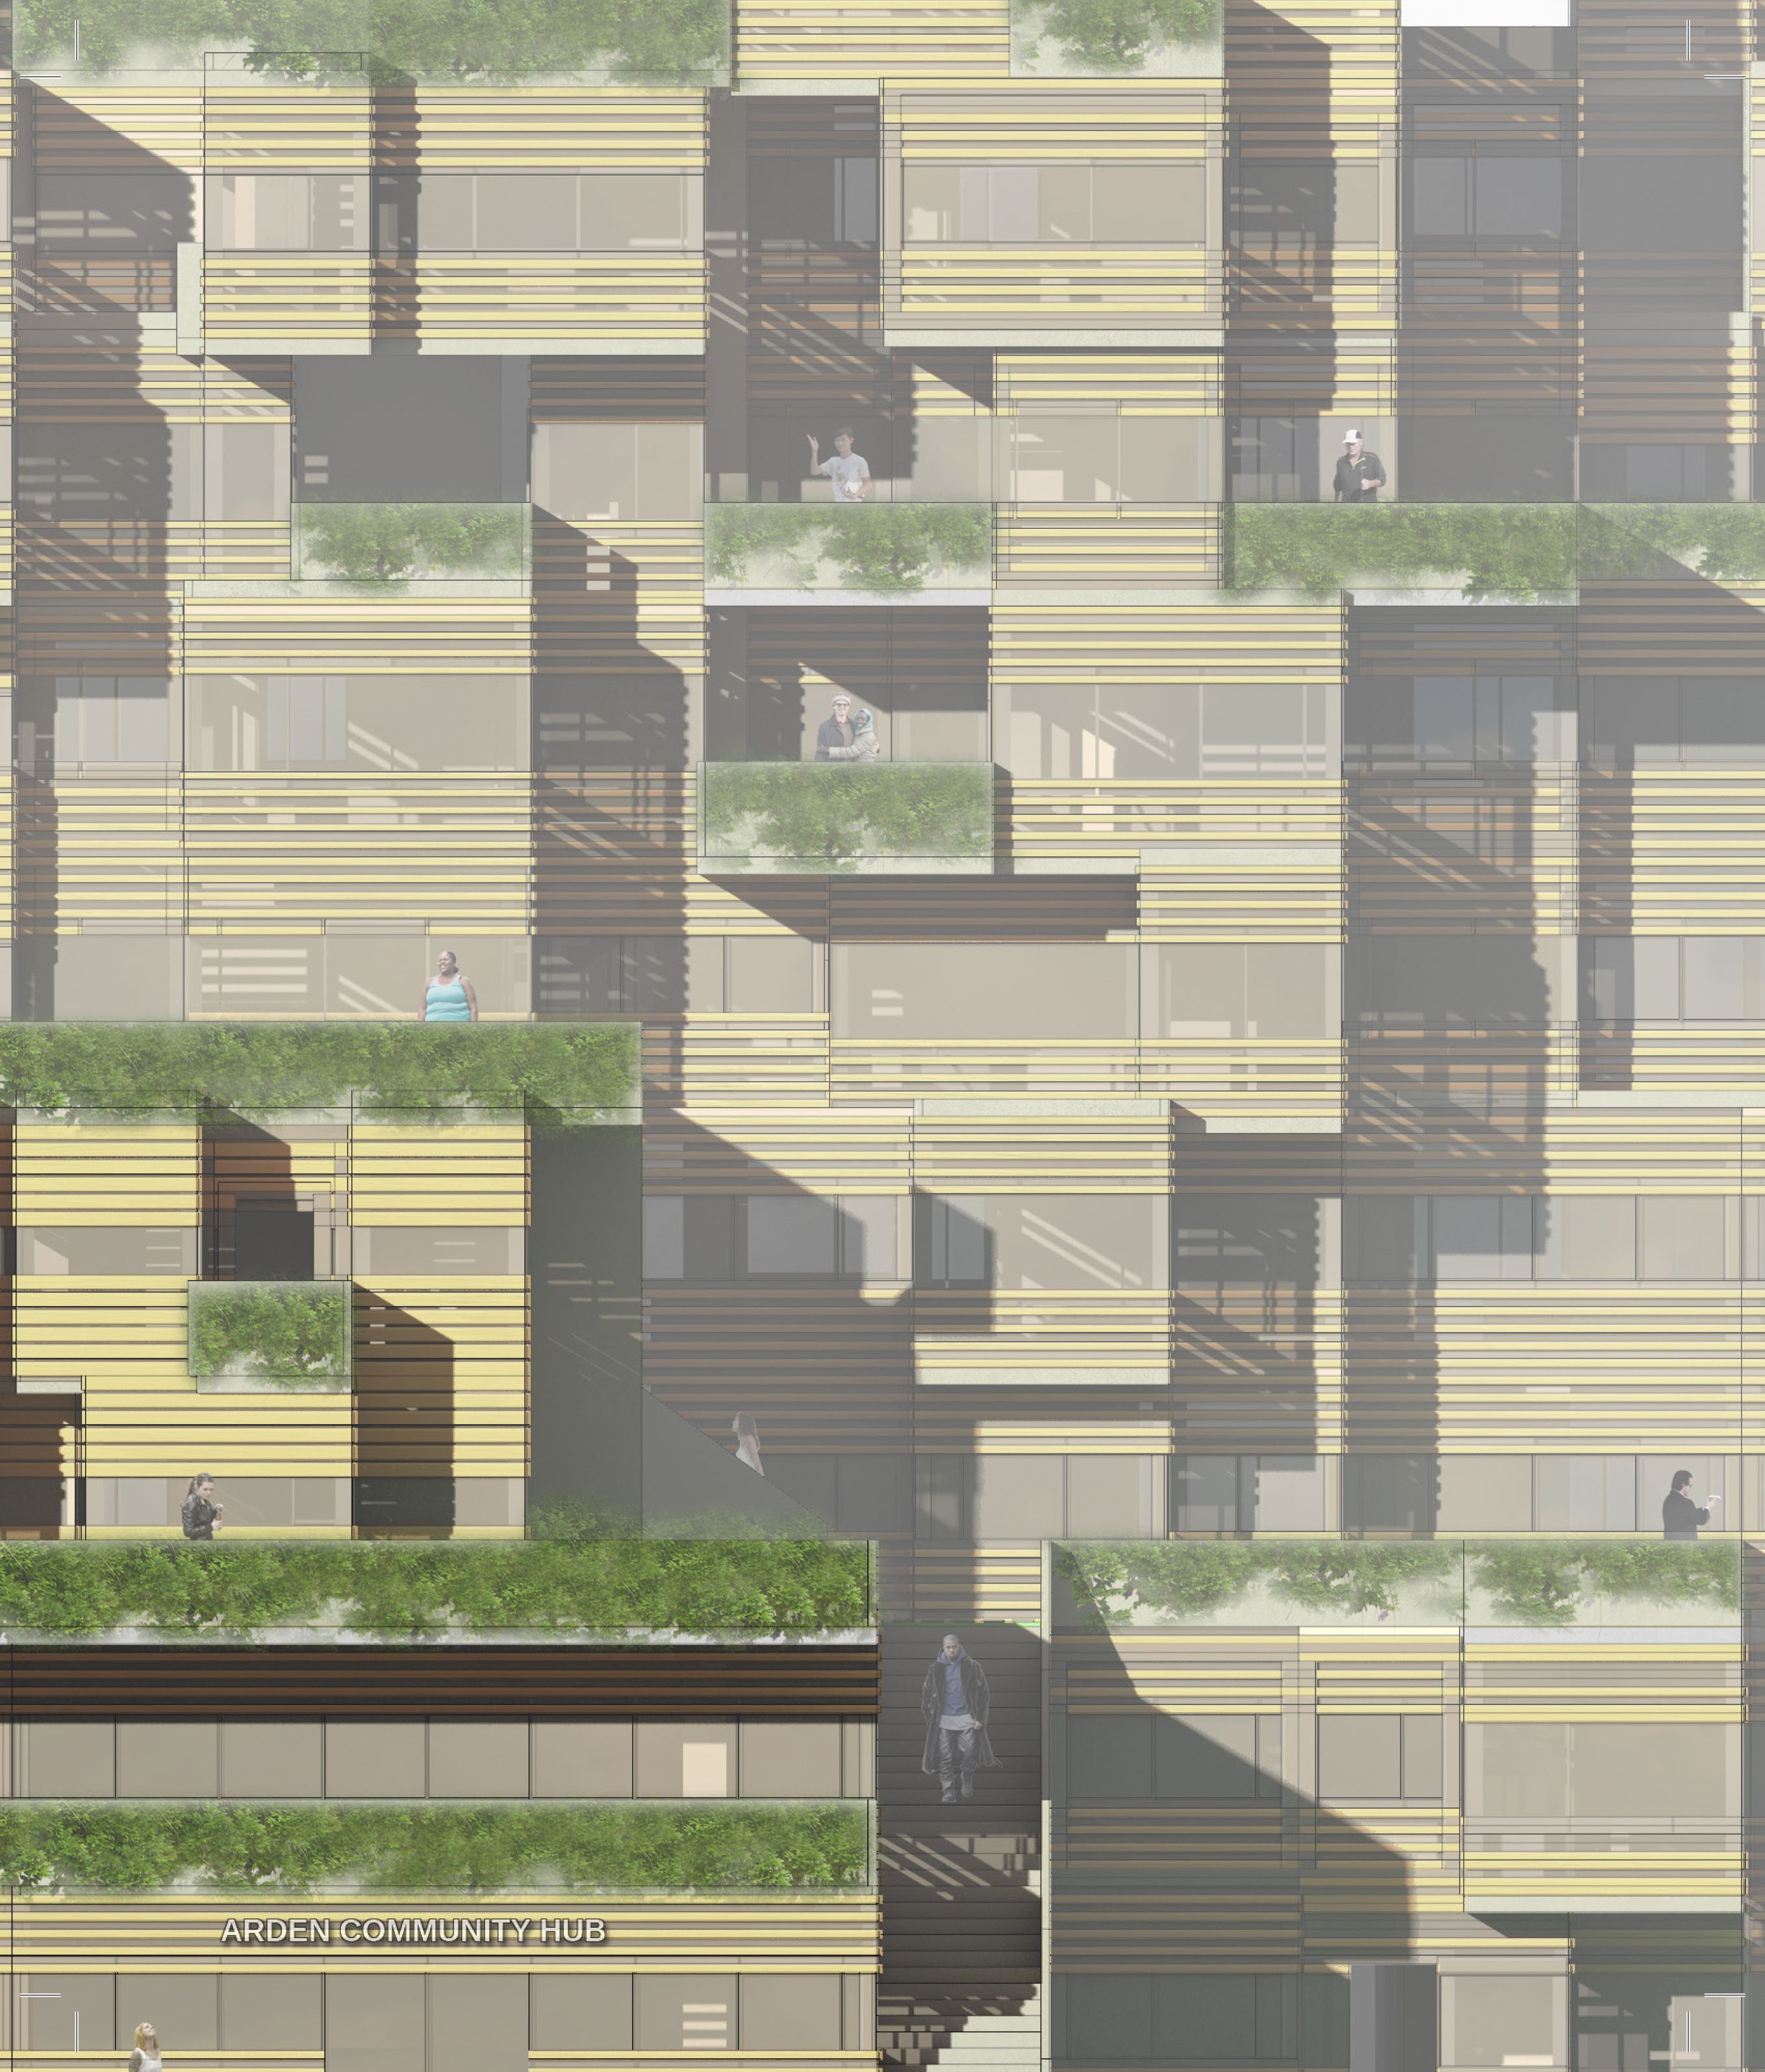 MSD M.Arch S2/16 - Jonathan Russell. Independent Thesis - Your Highrise Home: Arden. Supervisor: Justyna Karakiewicz.